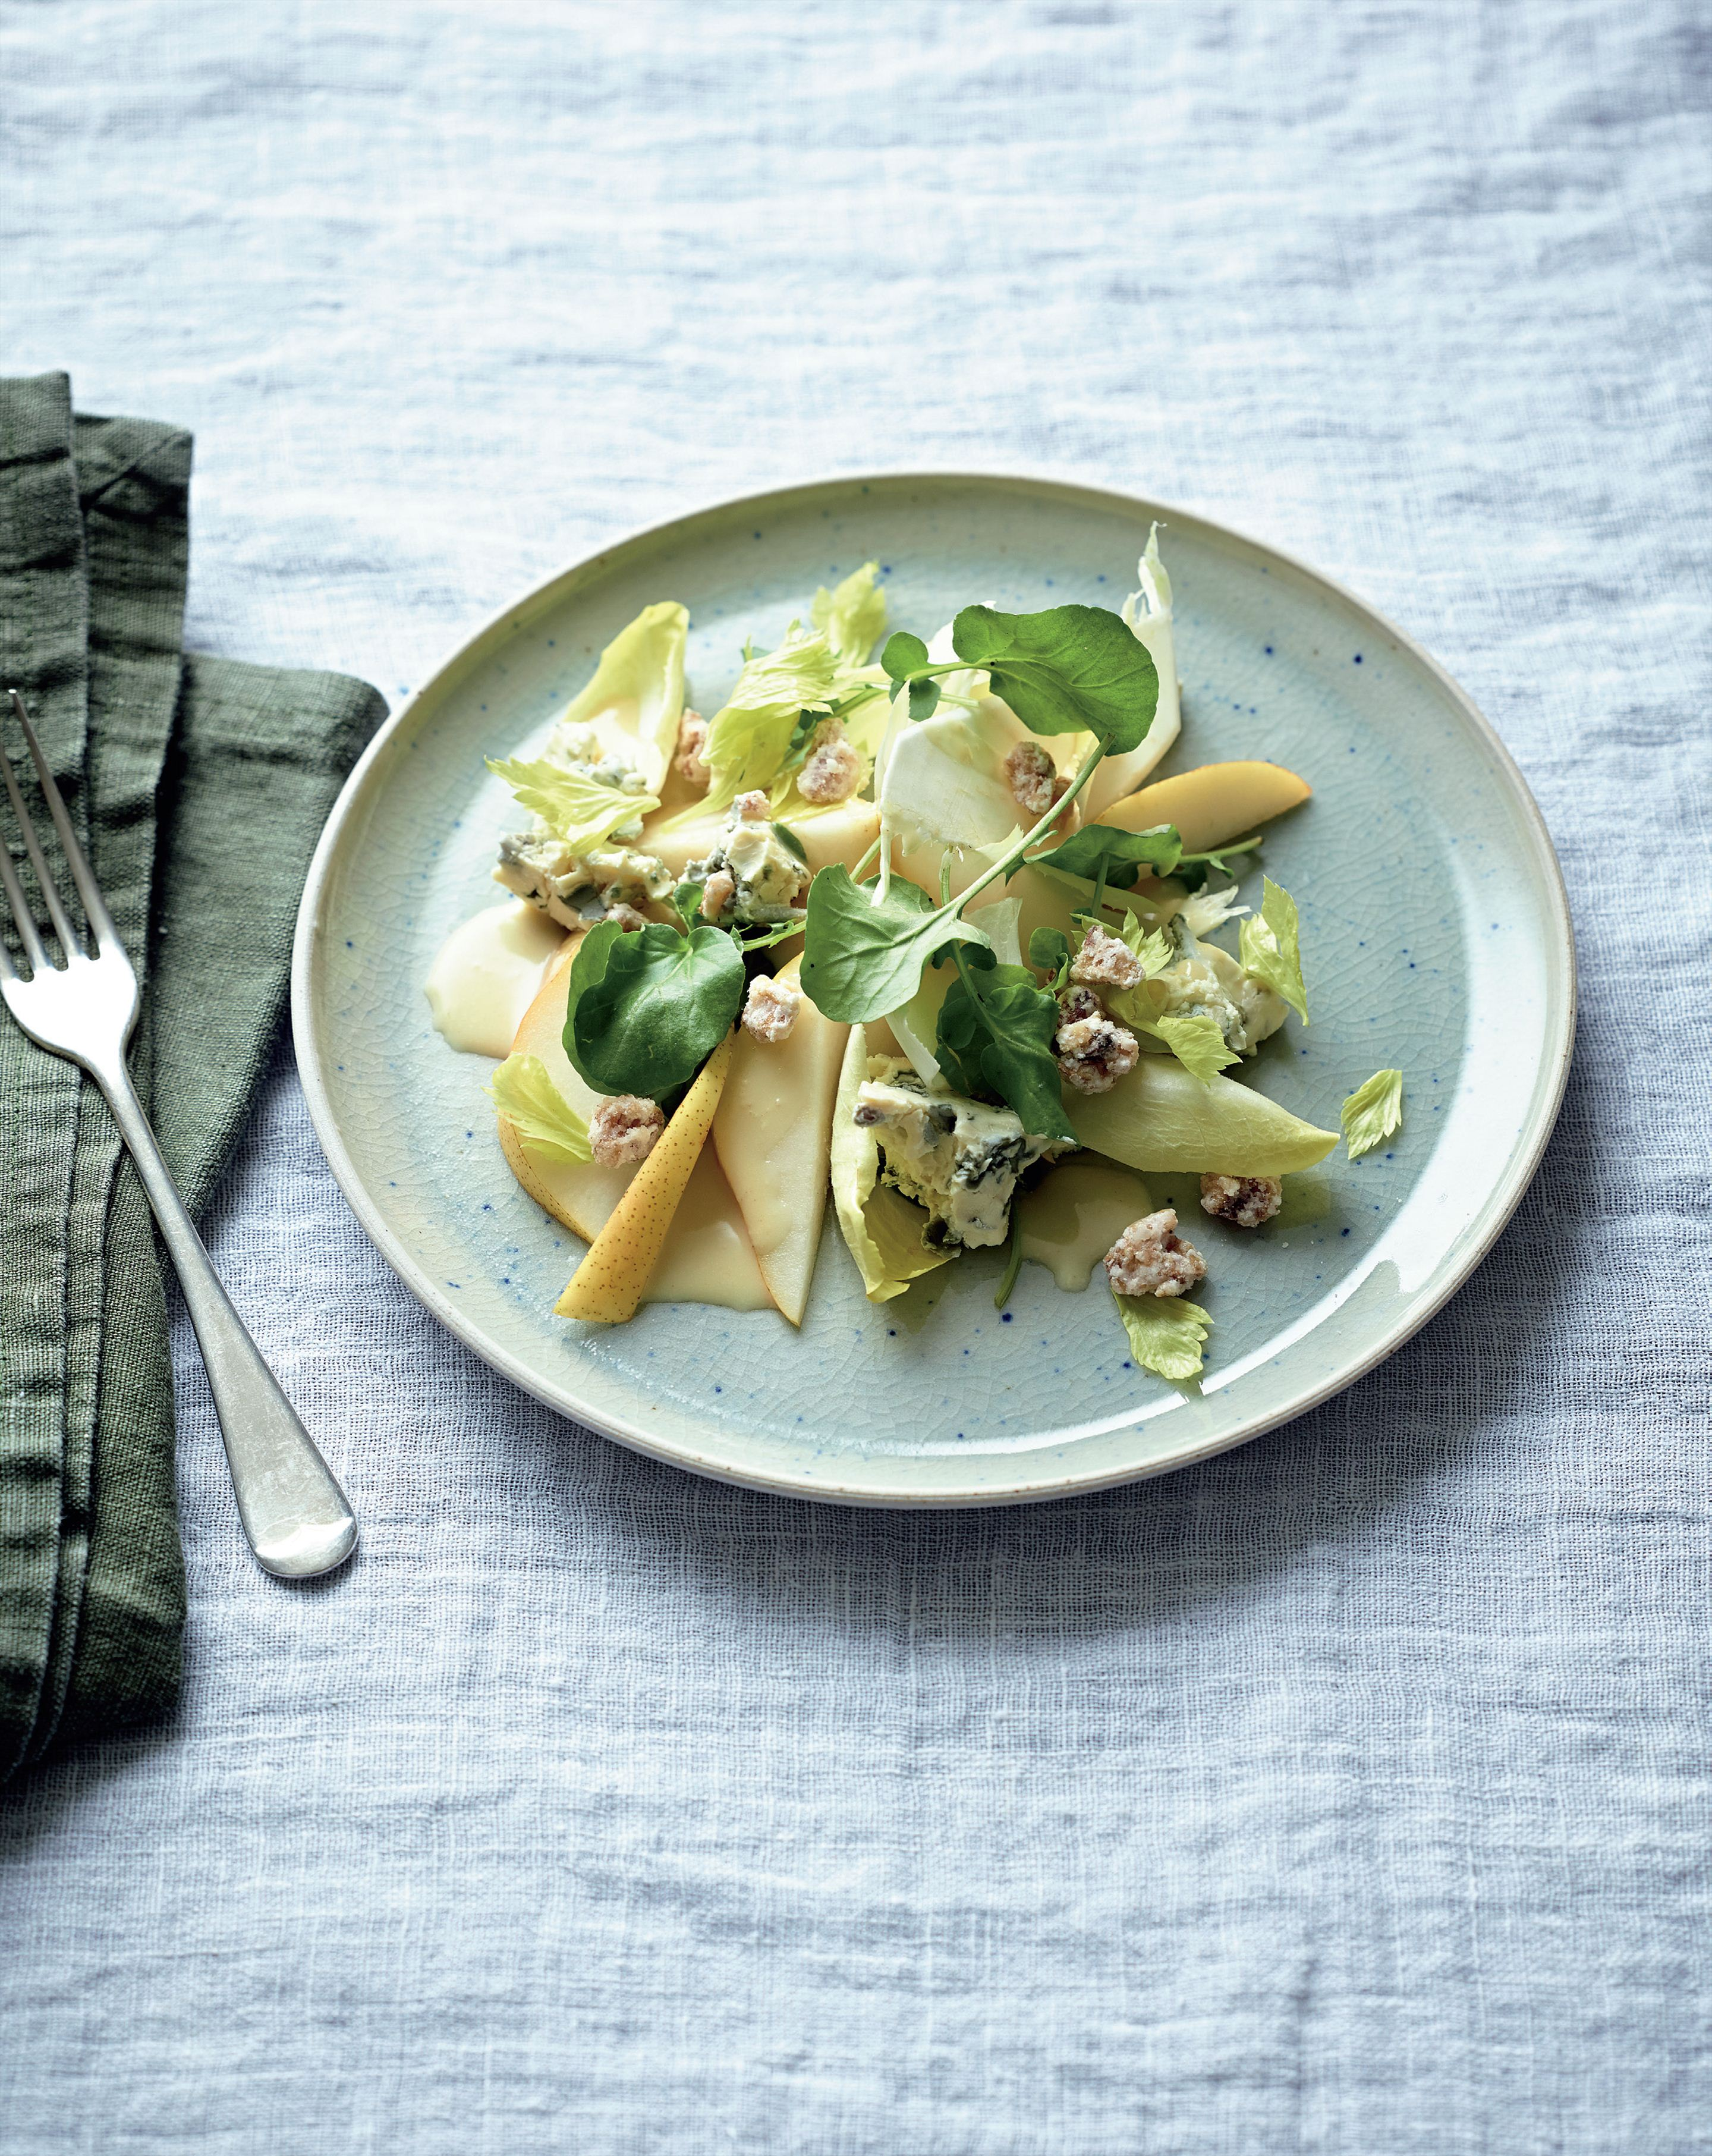 Watercress, pear and celeriac salad, candied walnuts, blue cheese